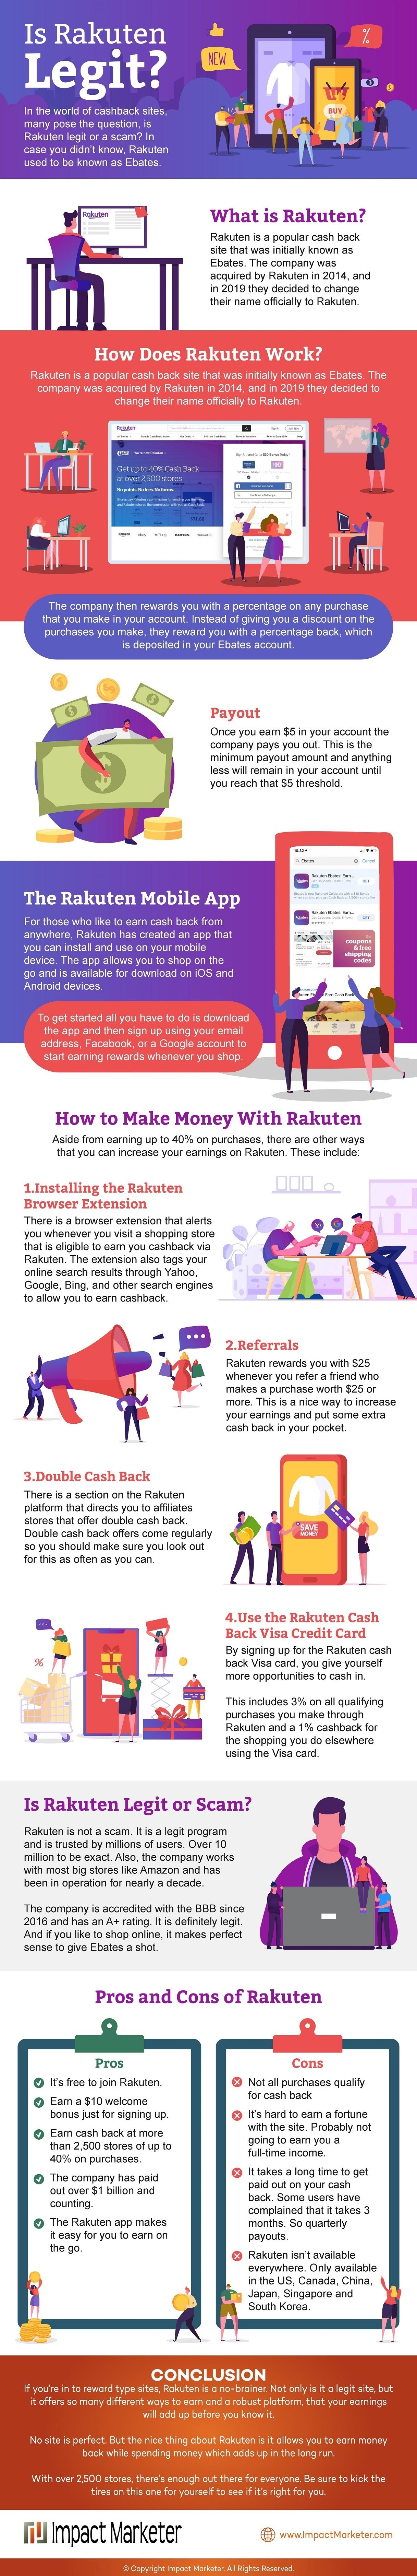 Is Rakuten Legit? (Review) #infographic